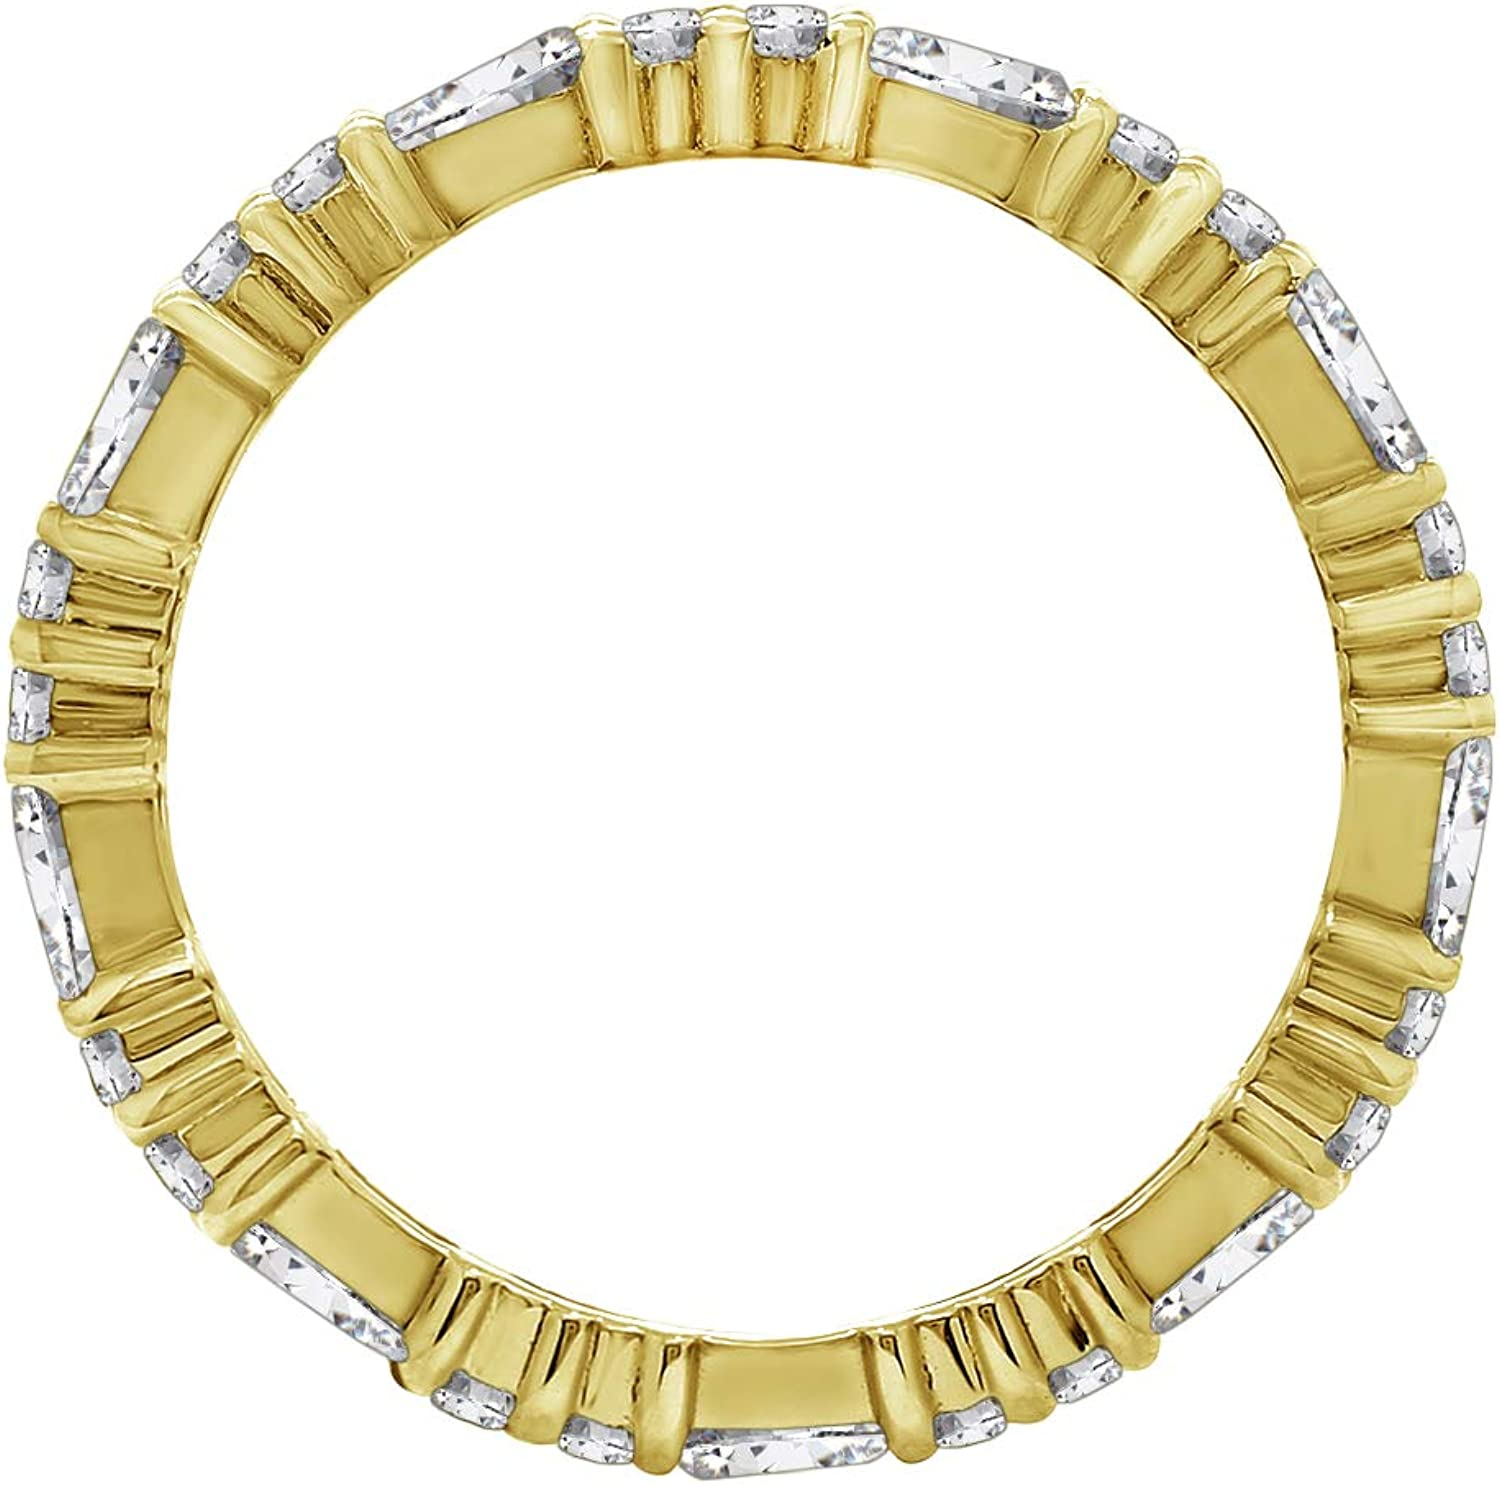 KIERA COUTURE RING BAR White Baguette Cut Yellow Gold Plated Sterling Silver Eternity Band Ring